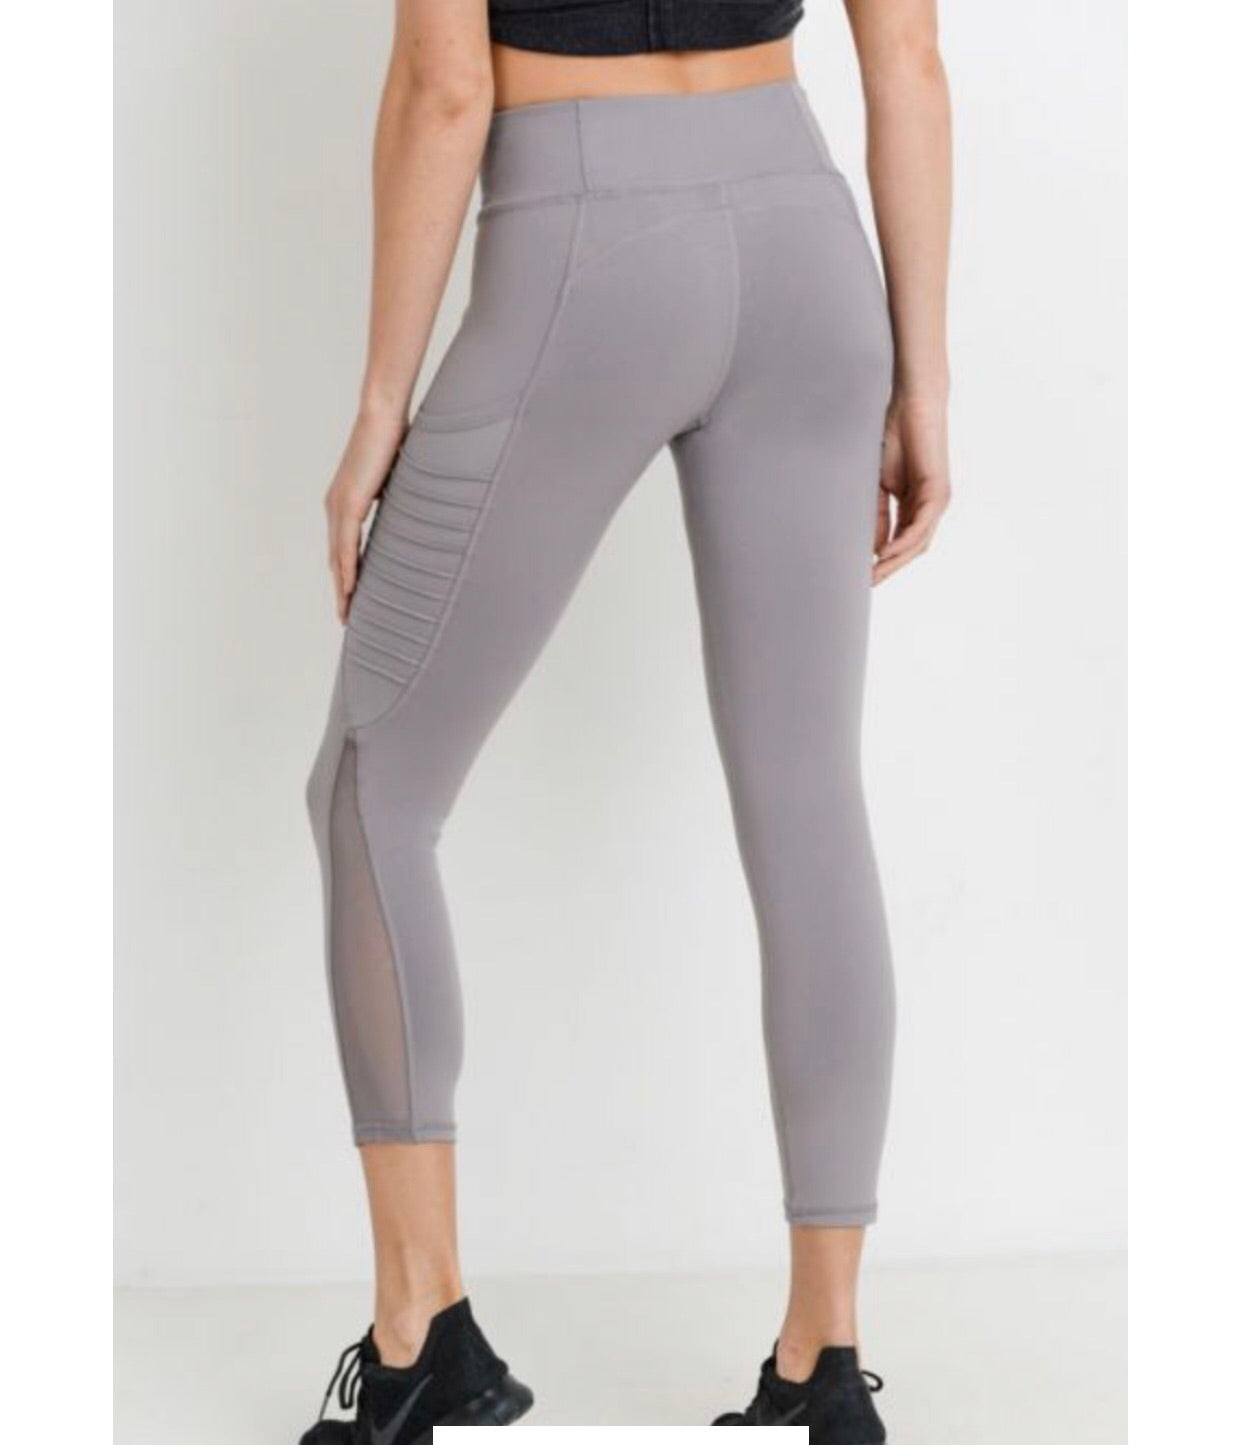 Motto Ribbed Splice Mesh Pocket Leggings (AP1714